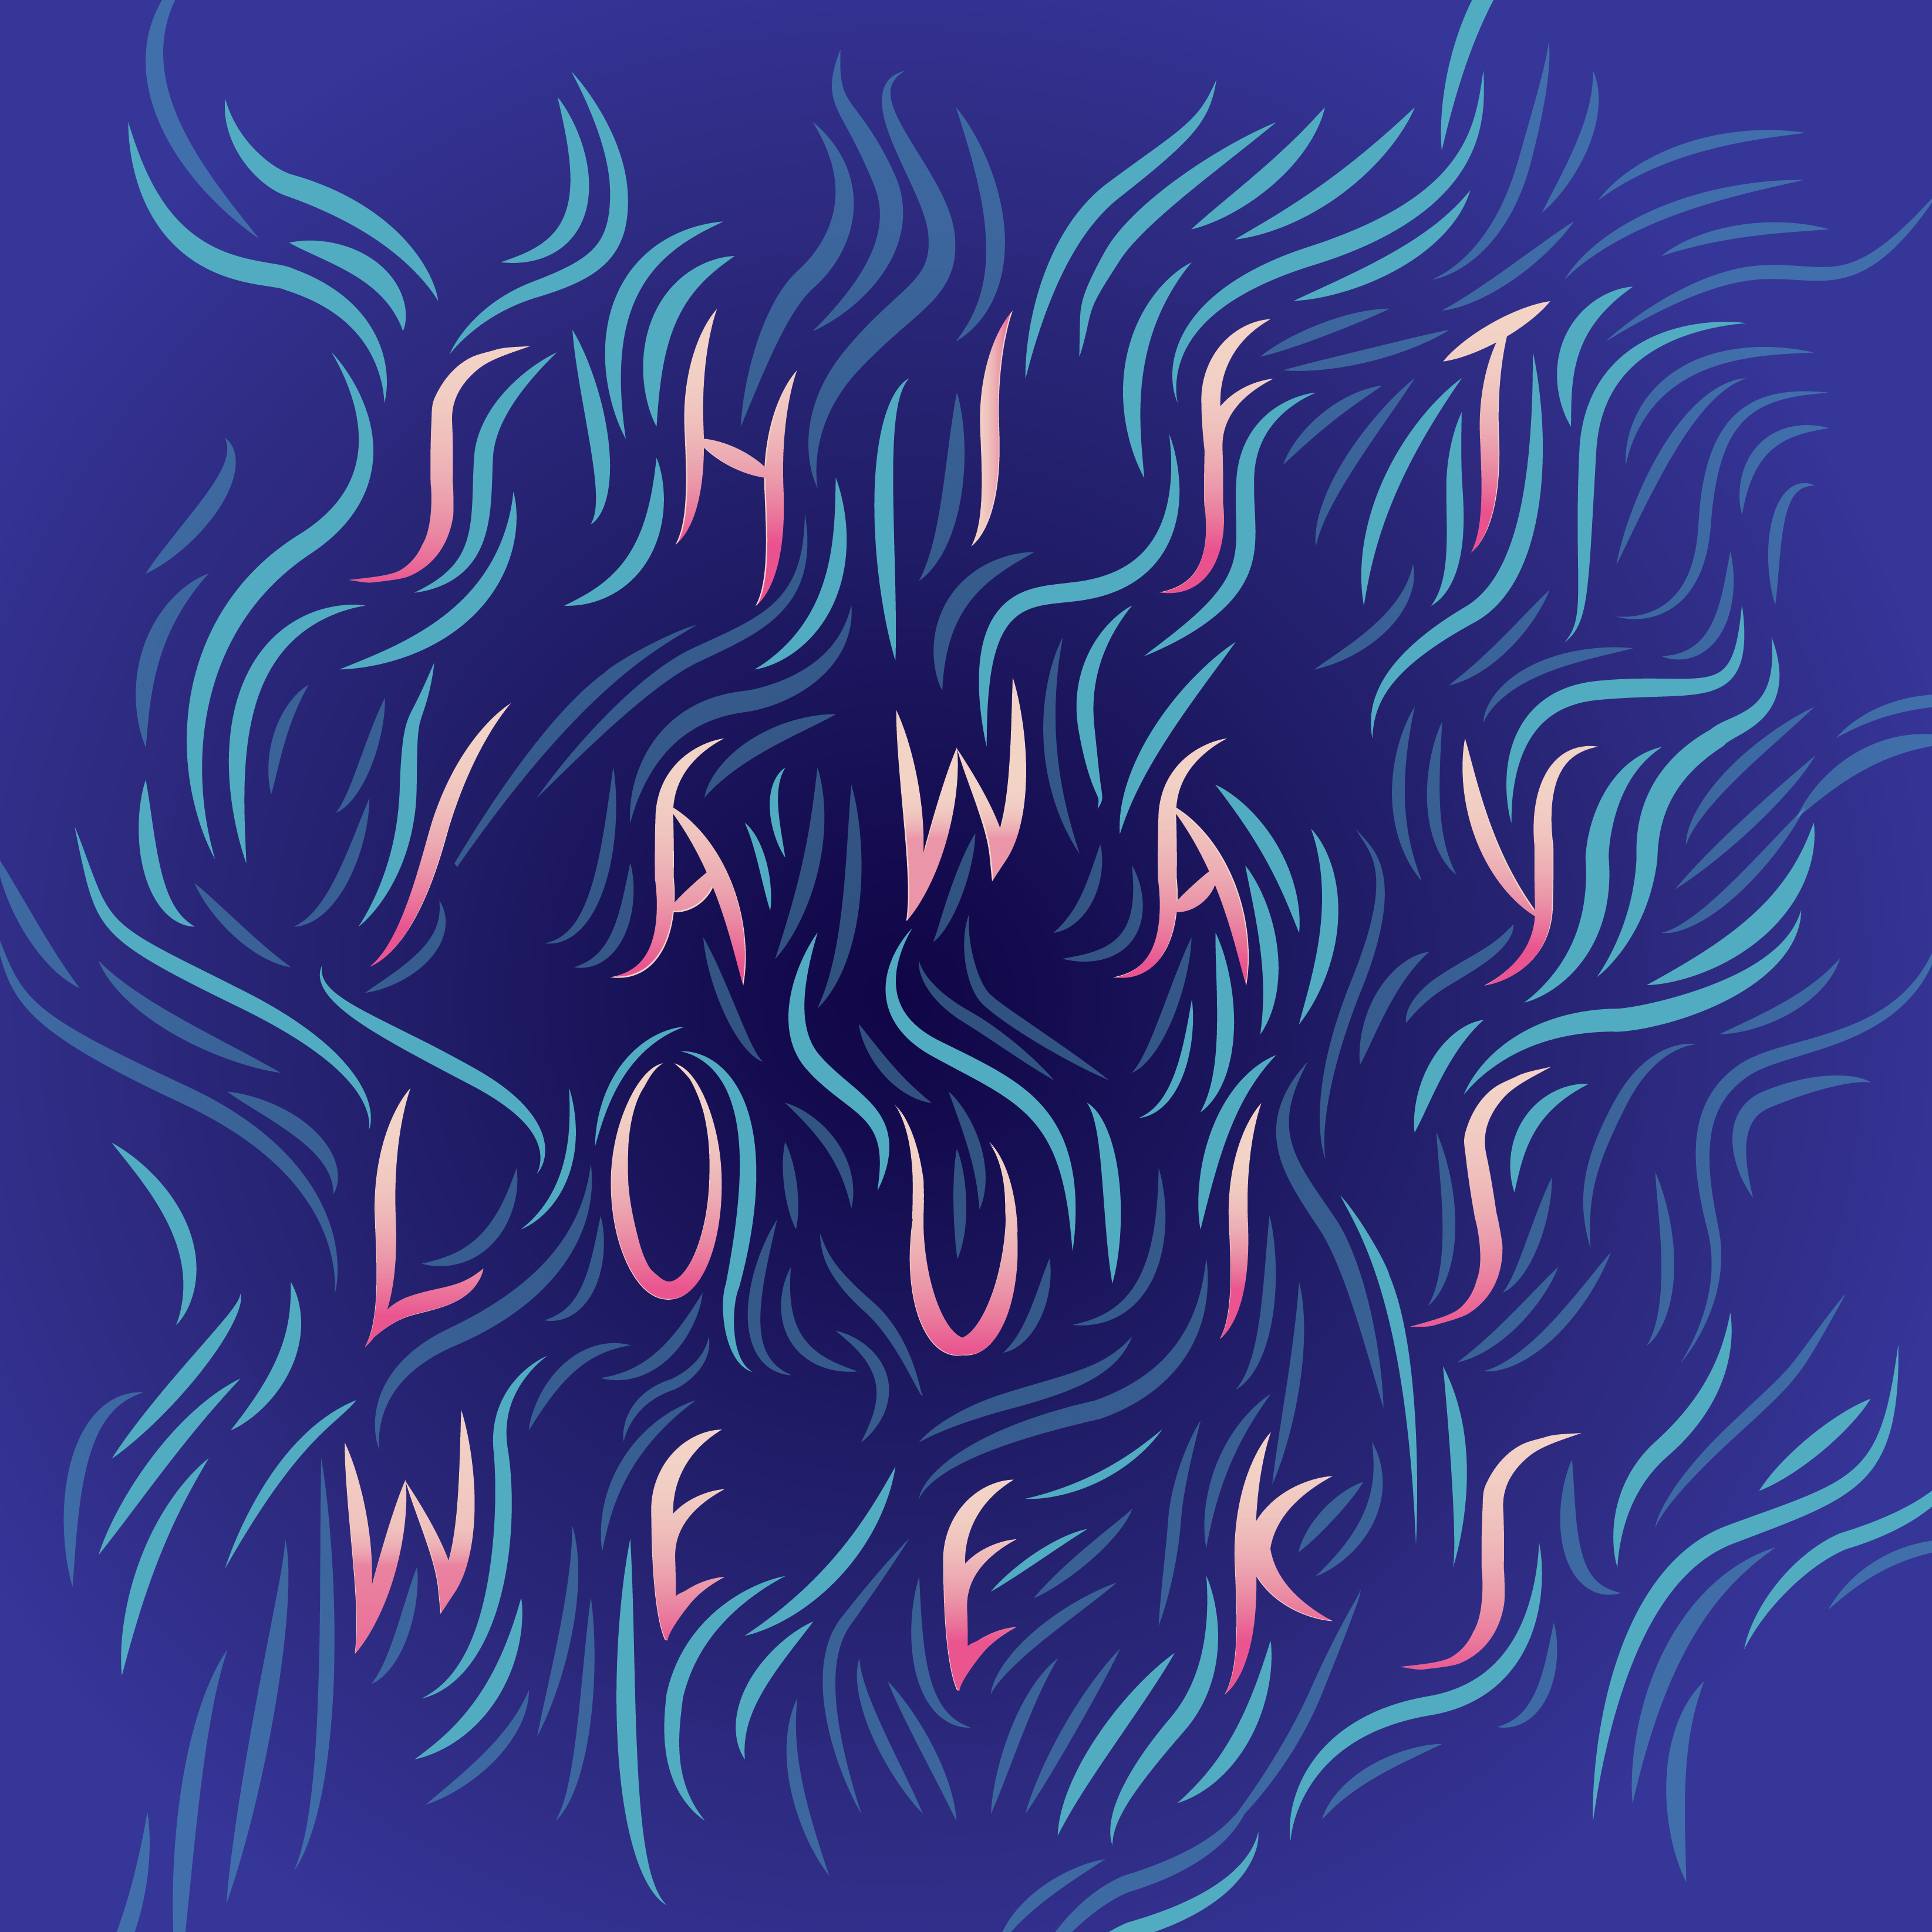 shift/away by Louis Weeks.